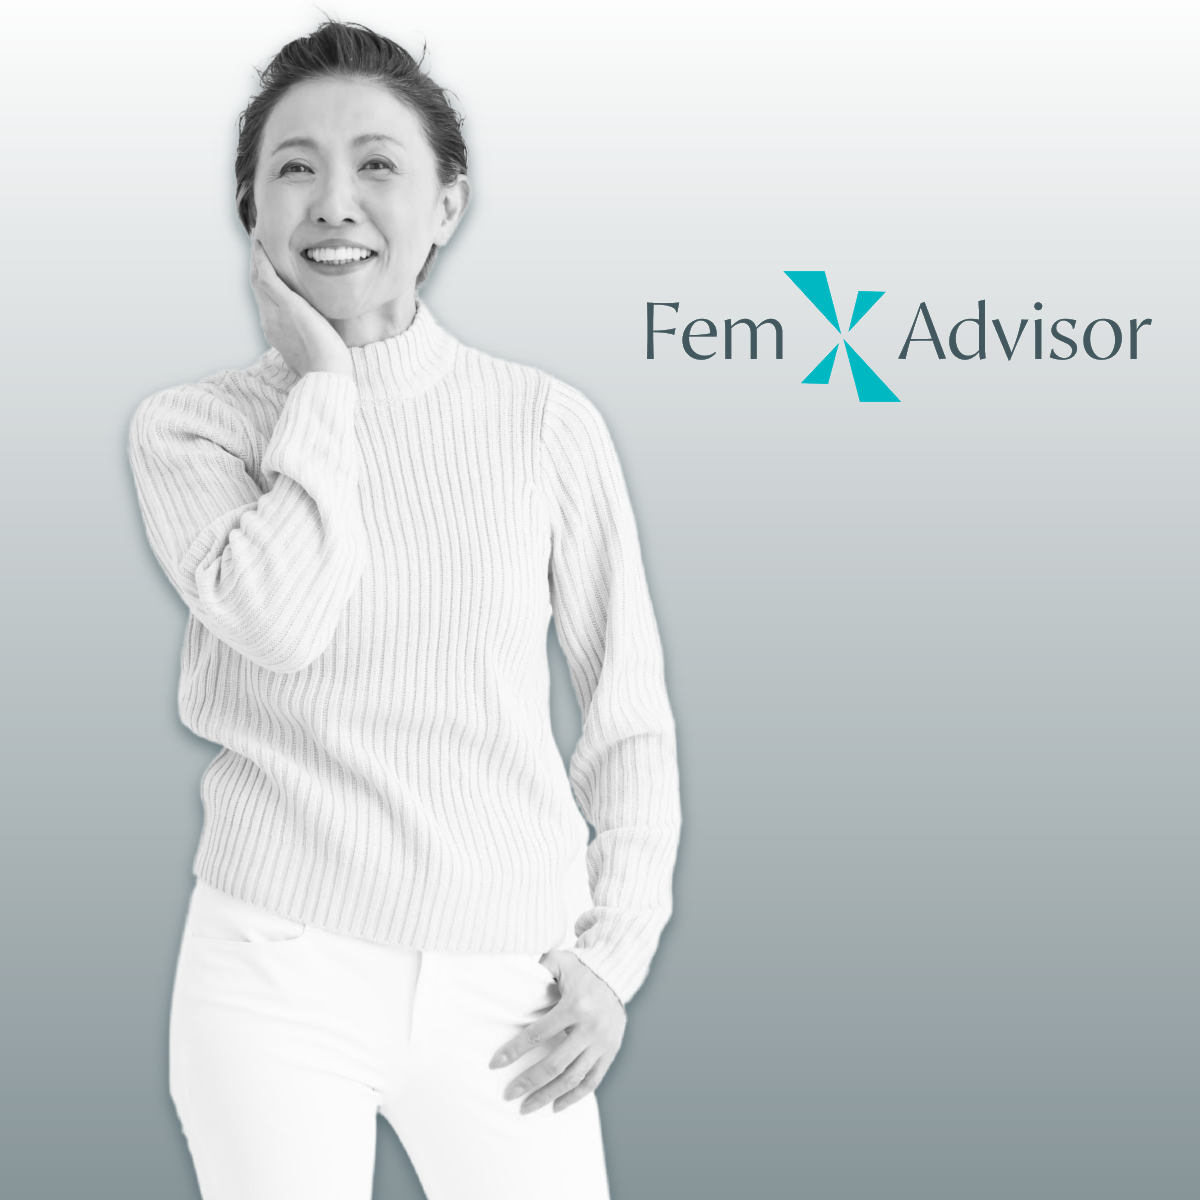 Advisors This Could Be Your Future, What The Heck Are You Waiting For?